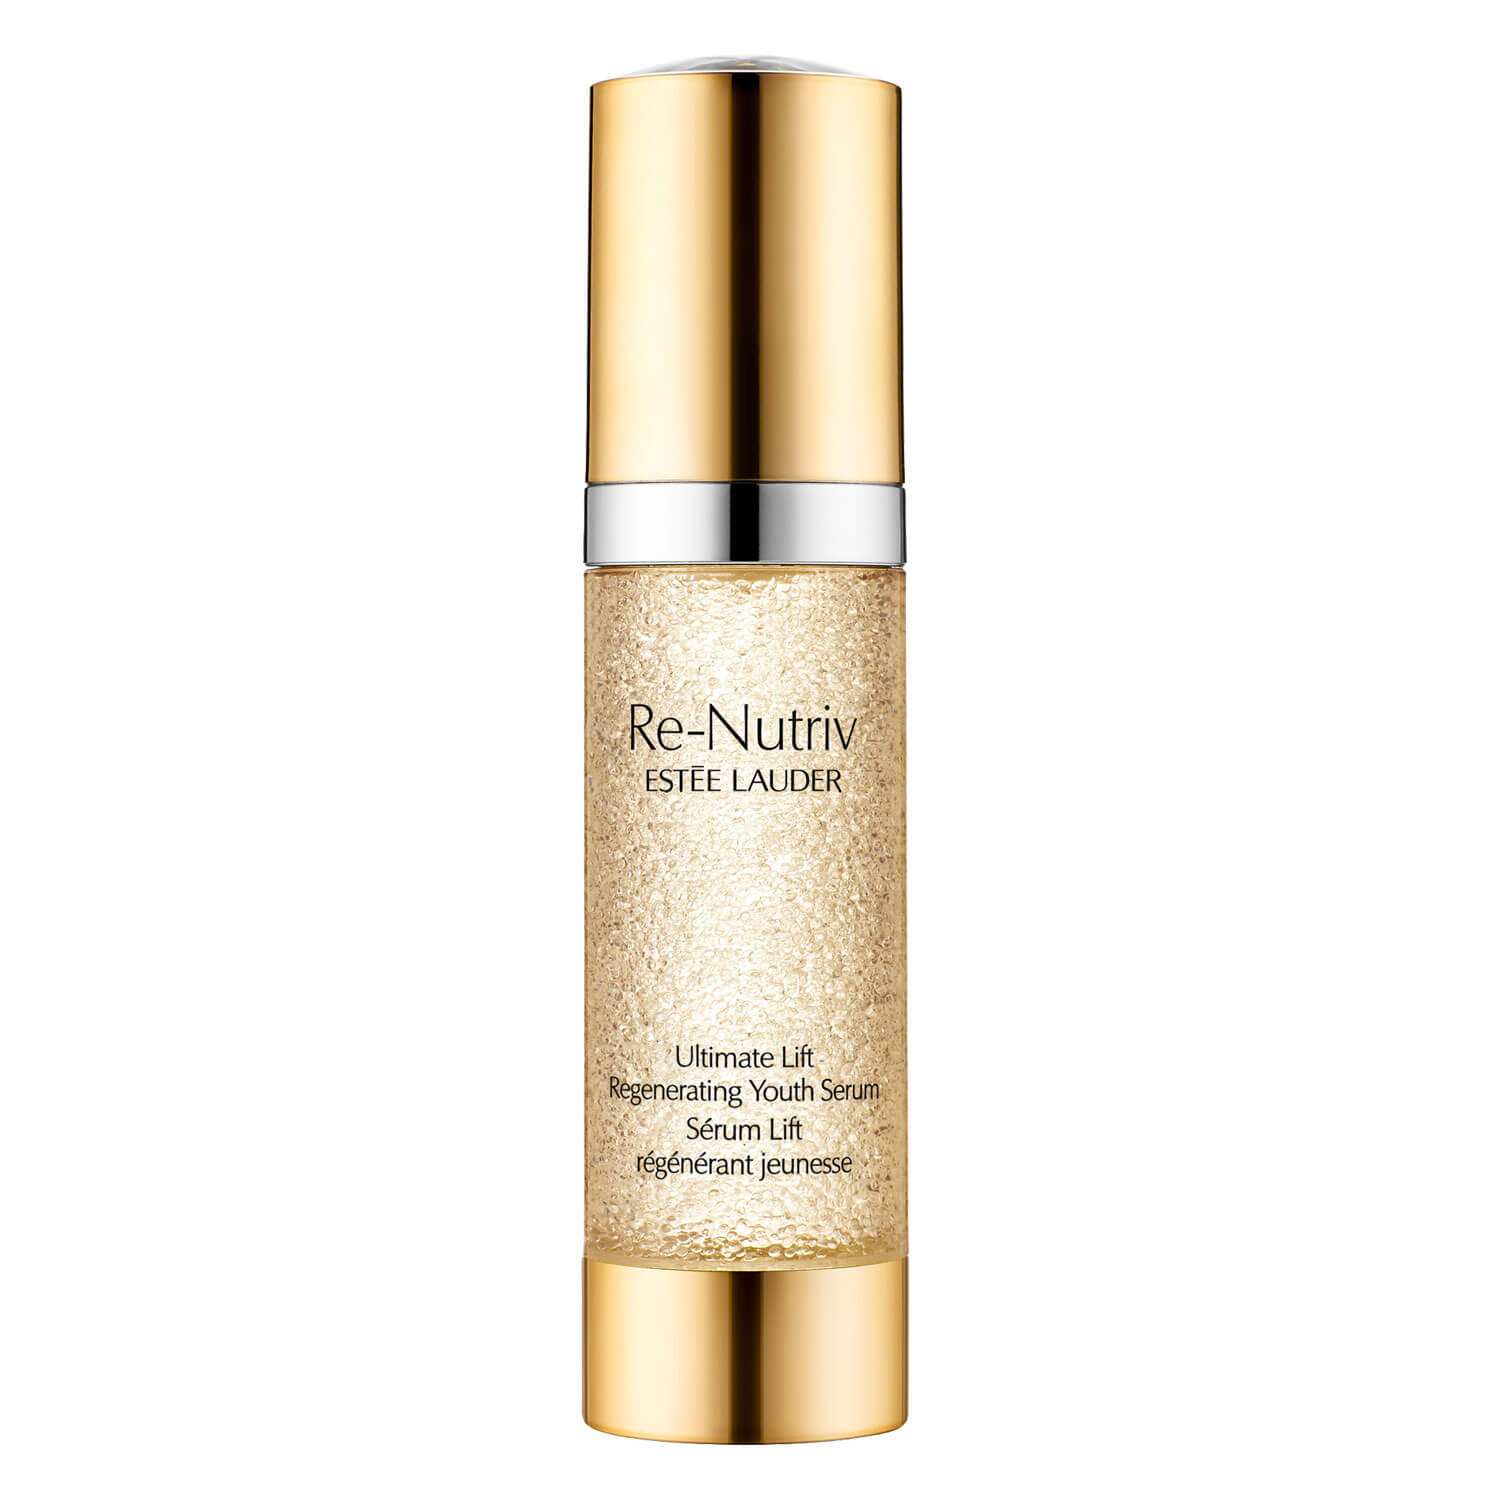 Re-Nutriv - Ultimate Lifting Regenerating Youth Serum